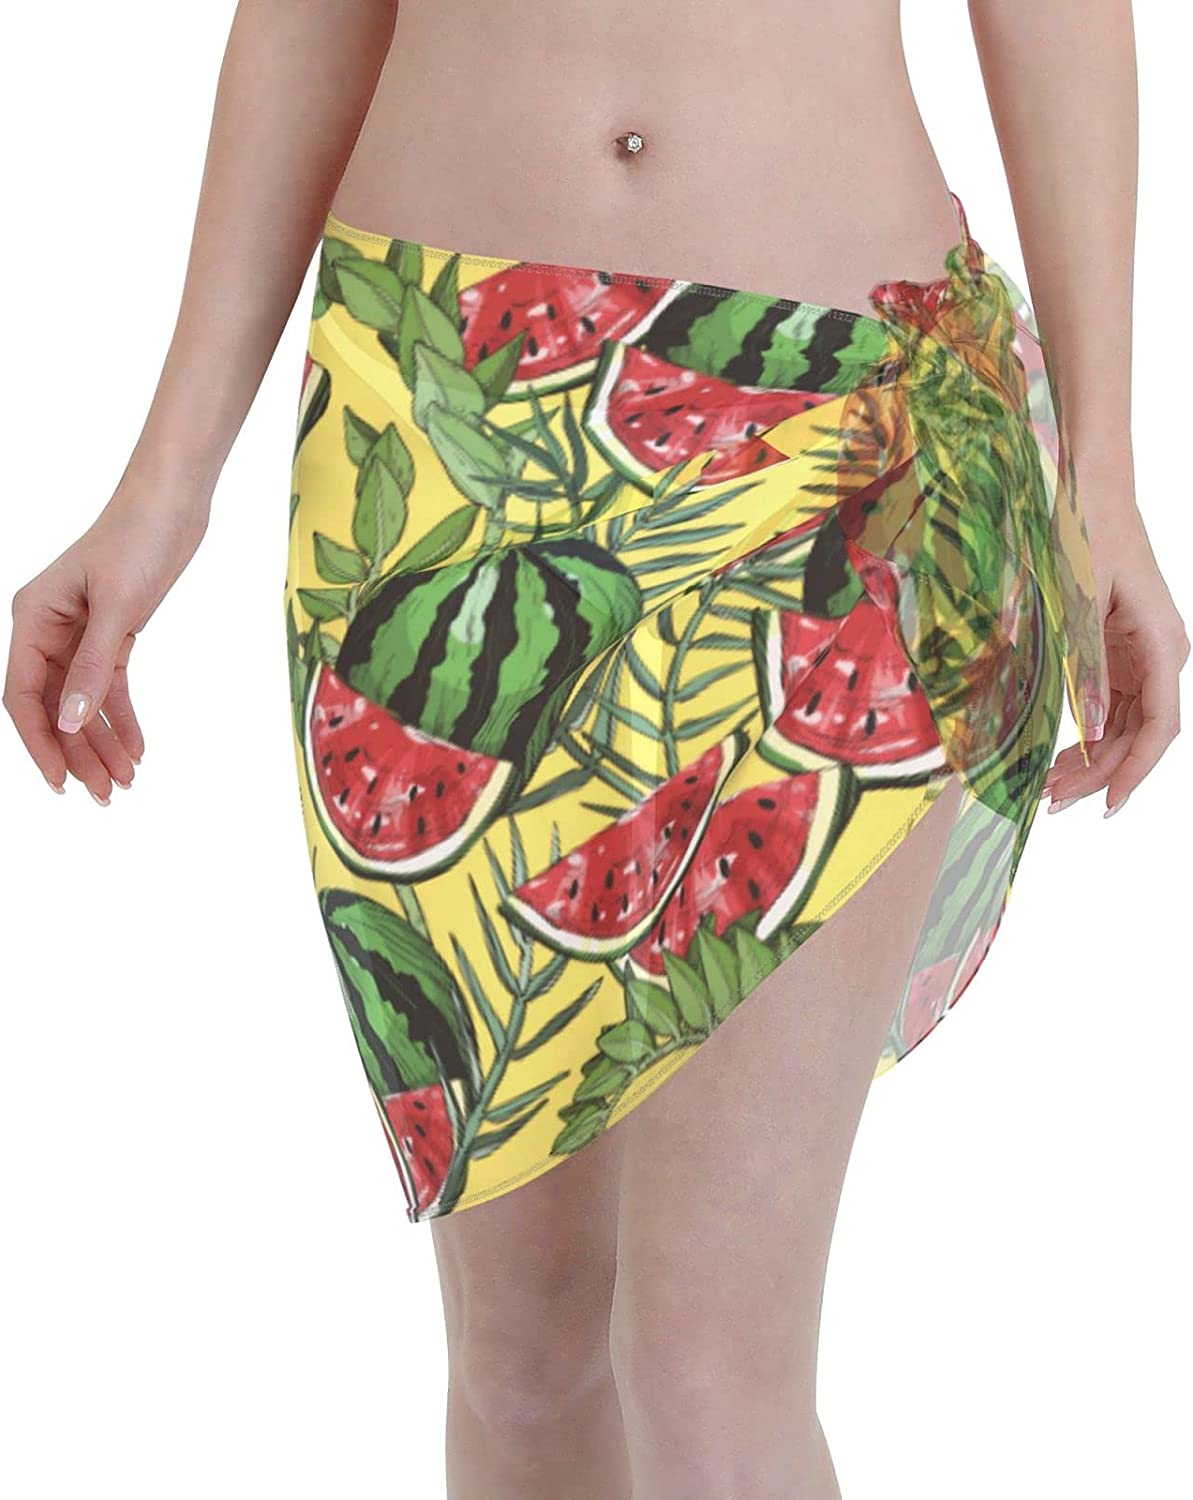 marat Women's Wrap Skirt with Watermelons and Leafs Tie Up Waist Swimsuit Cover Ups Sarong Swimwear Beach Summer Shawl 55.1 X 18.6 Inch Black